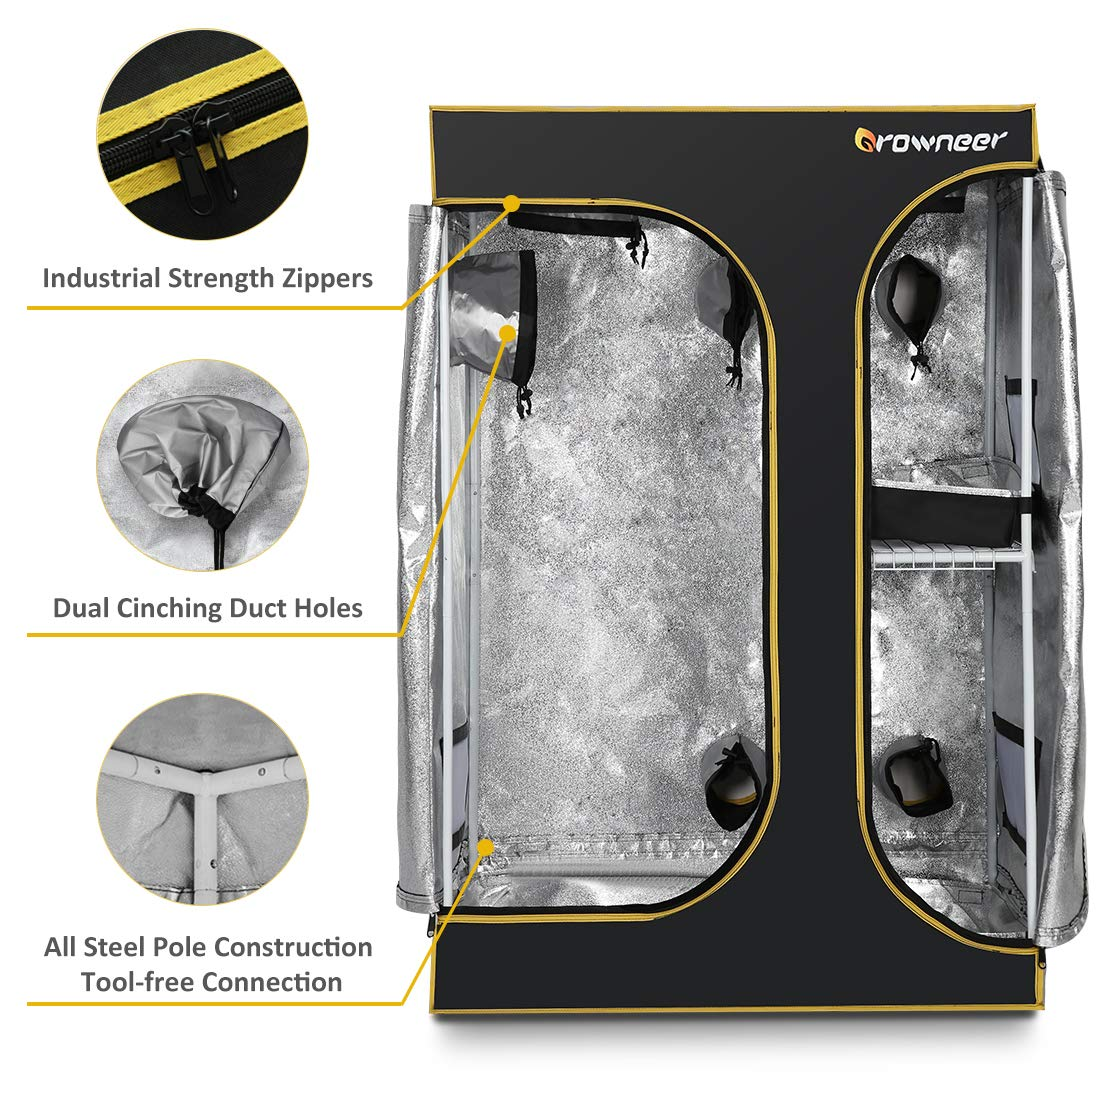 Upgraded for Hydroponic Indoor Plant Germination Growing w//Easy View Window /& Floor Tray GROWNEER 36x24x53 Lodge Propagation Tent 2-in-1 Mylar 600D Hydroponic Indoor Grow Tent